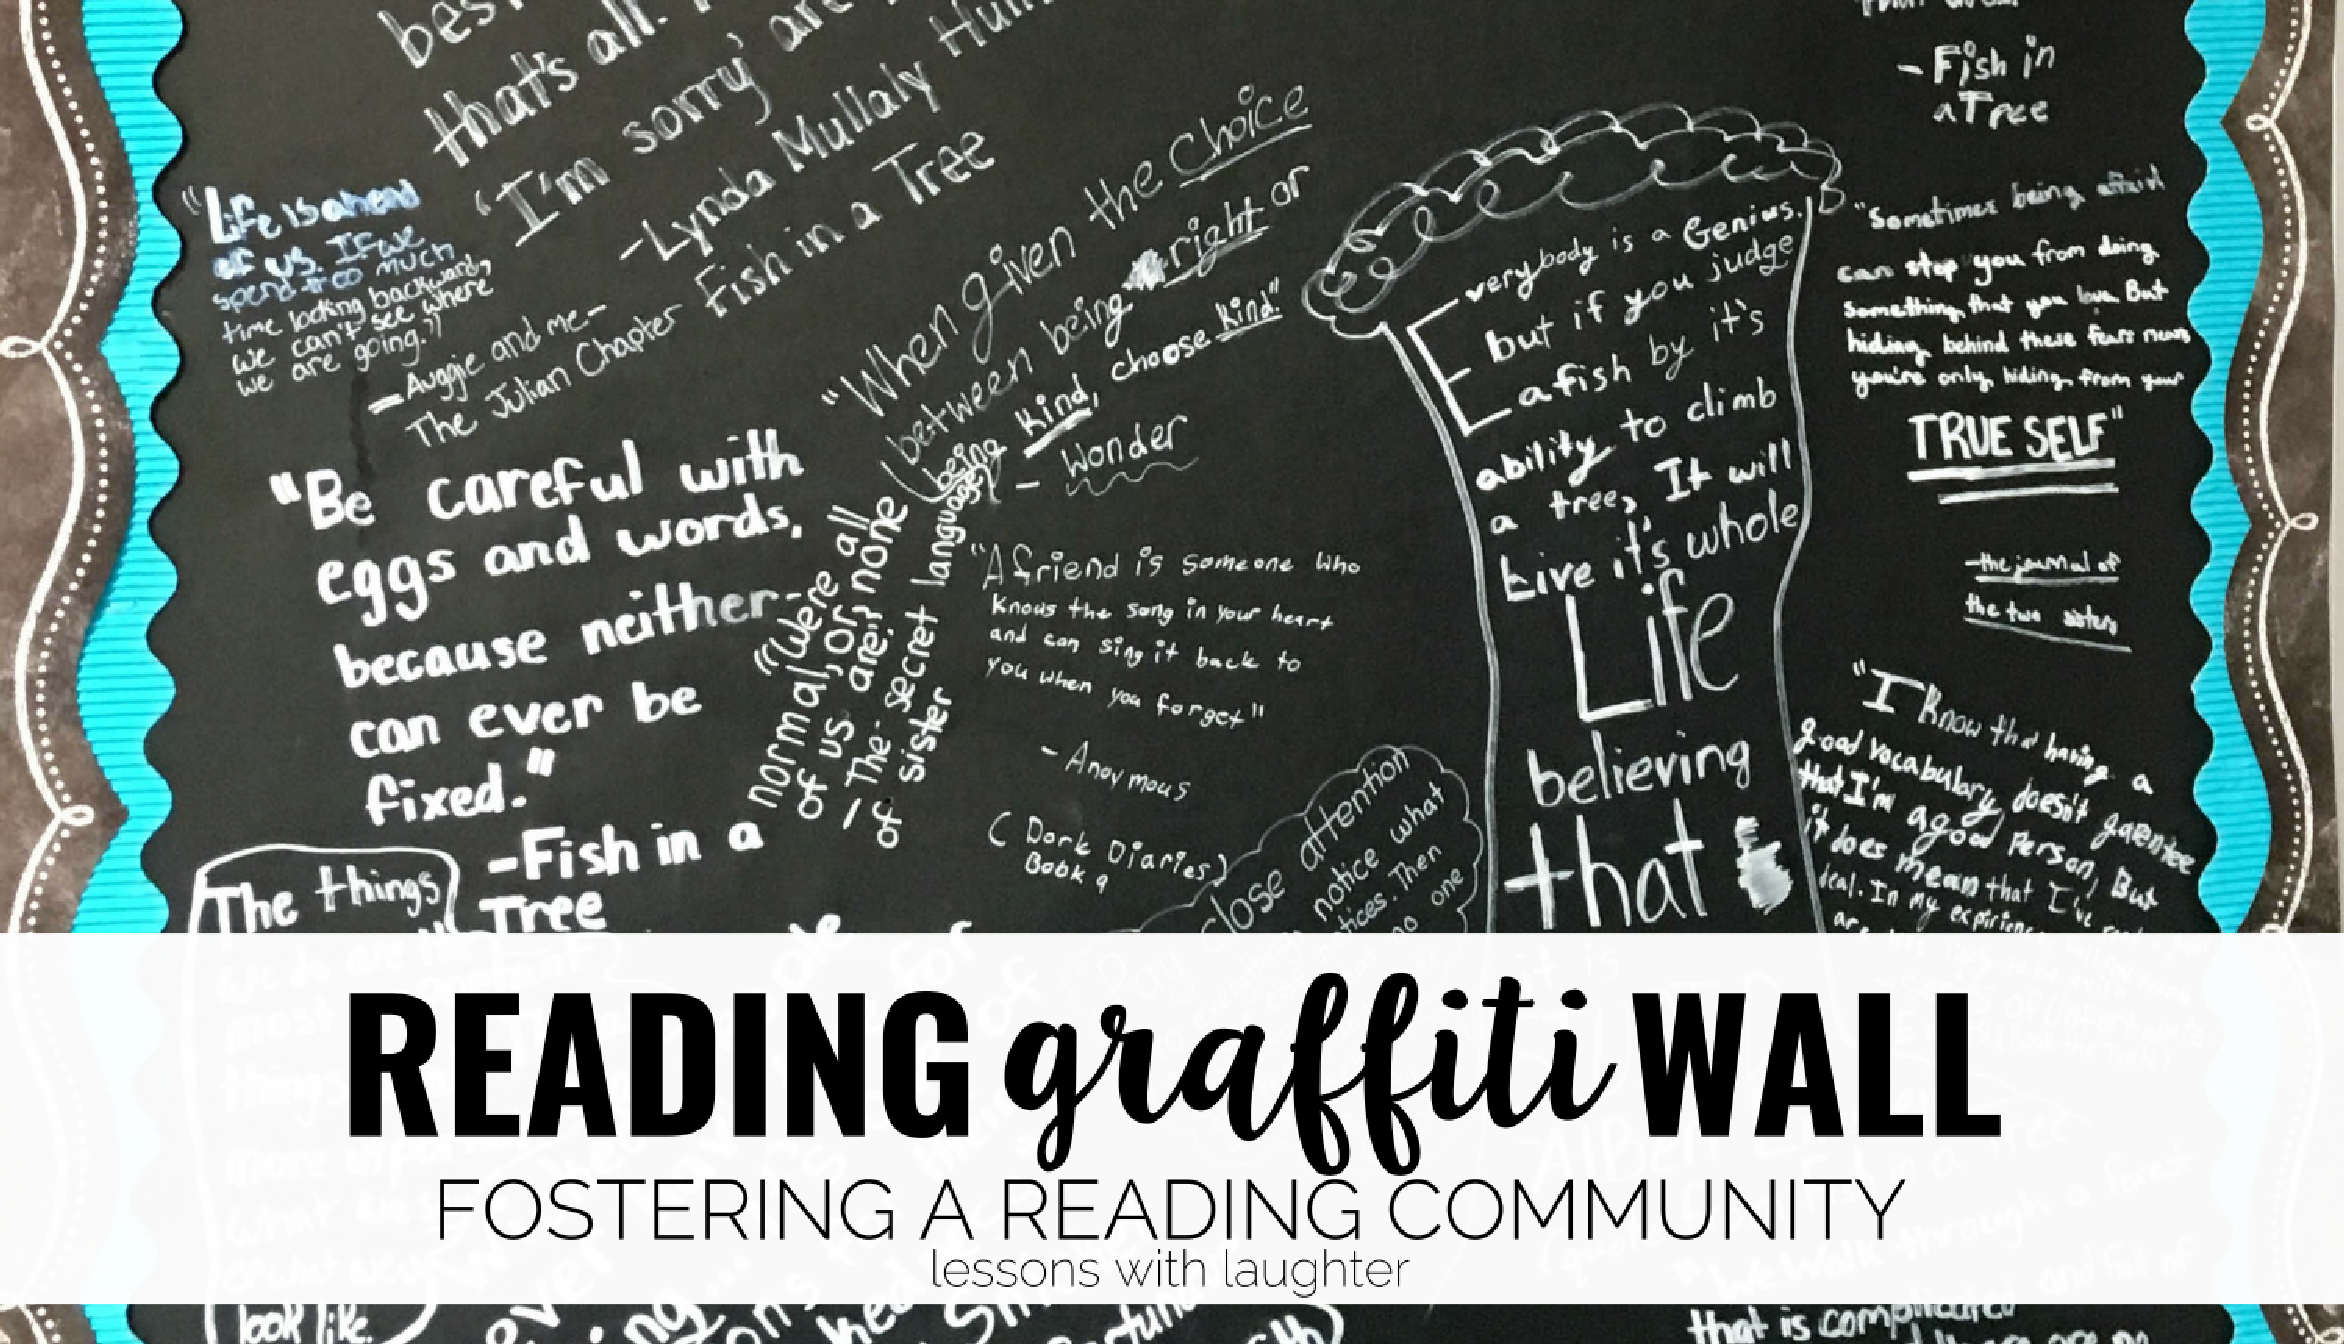 Graffiti wall pictures - Reading Graffiti Wall Fostering A Classroom Reading Community Lessons With Laughter